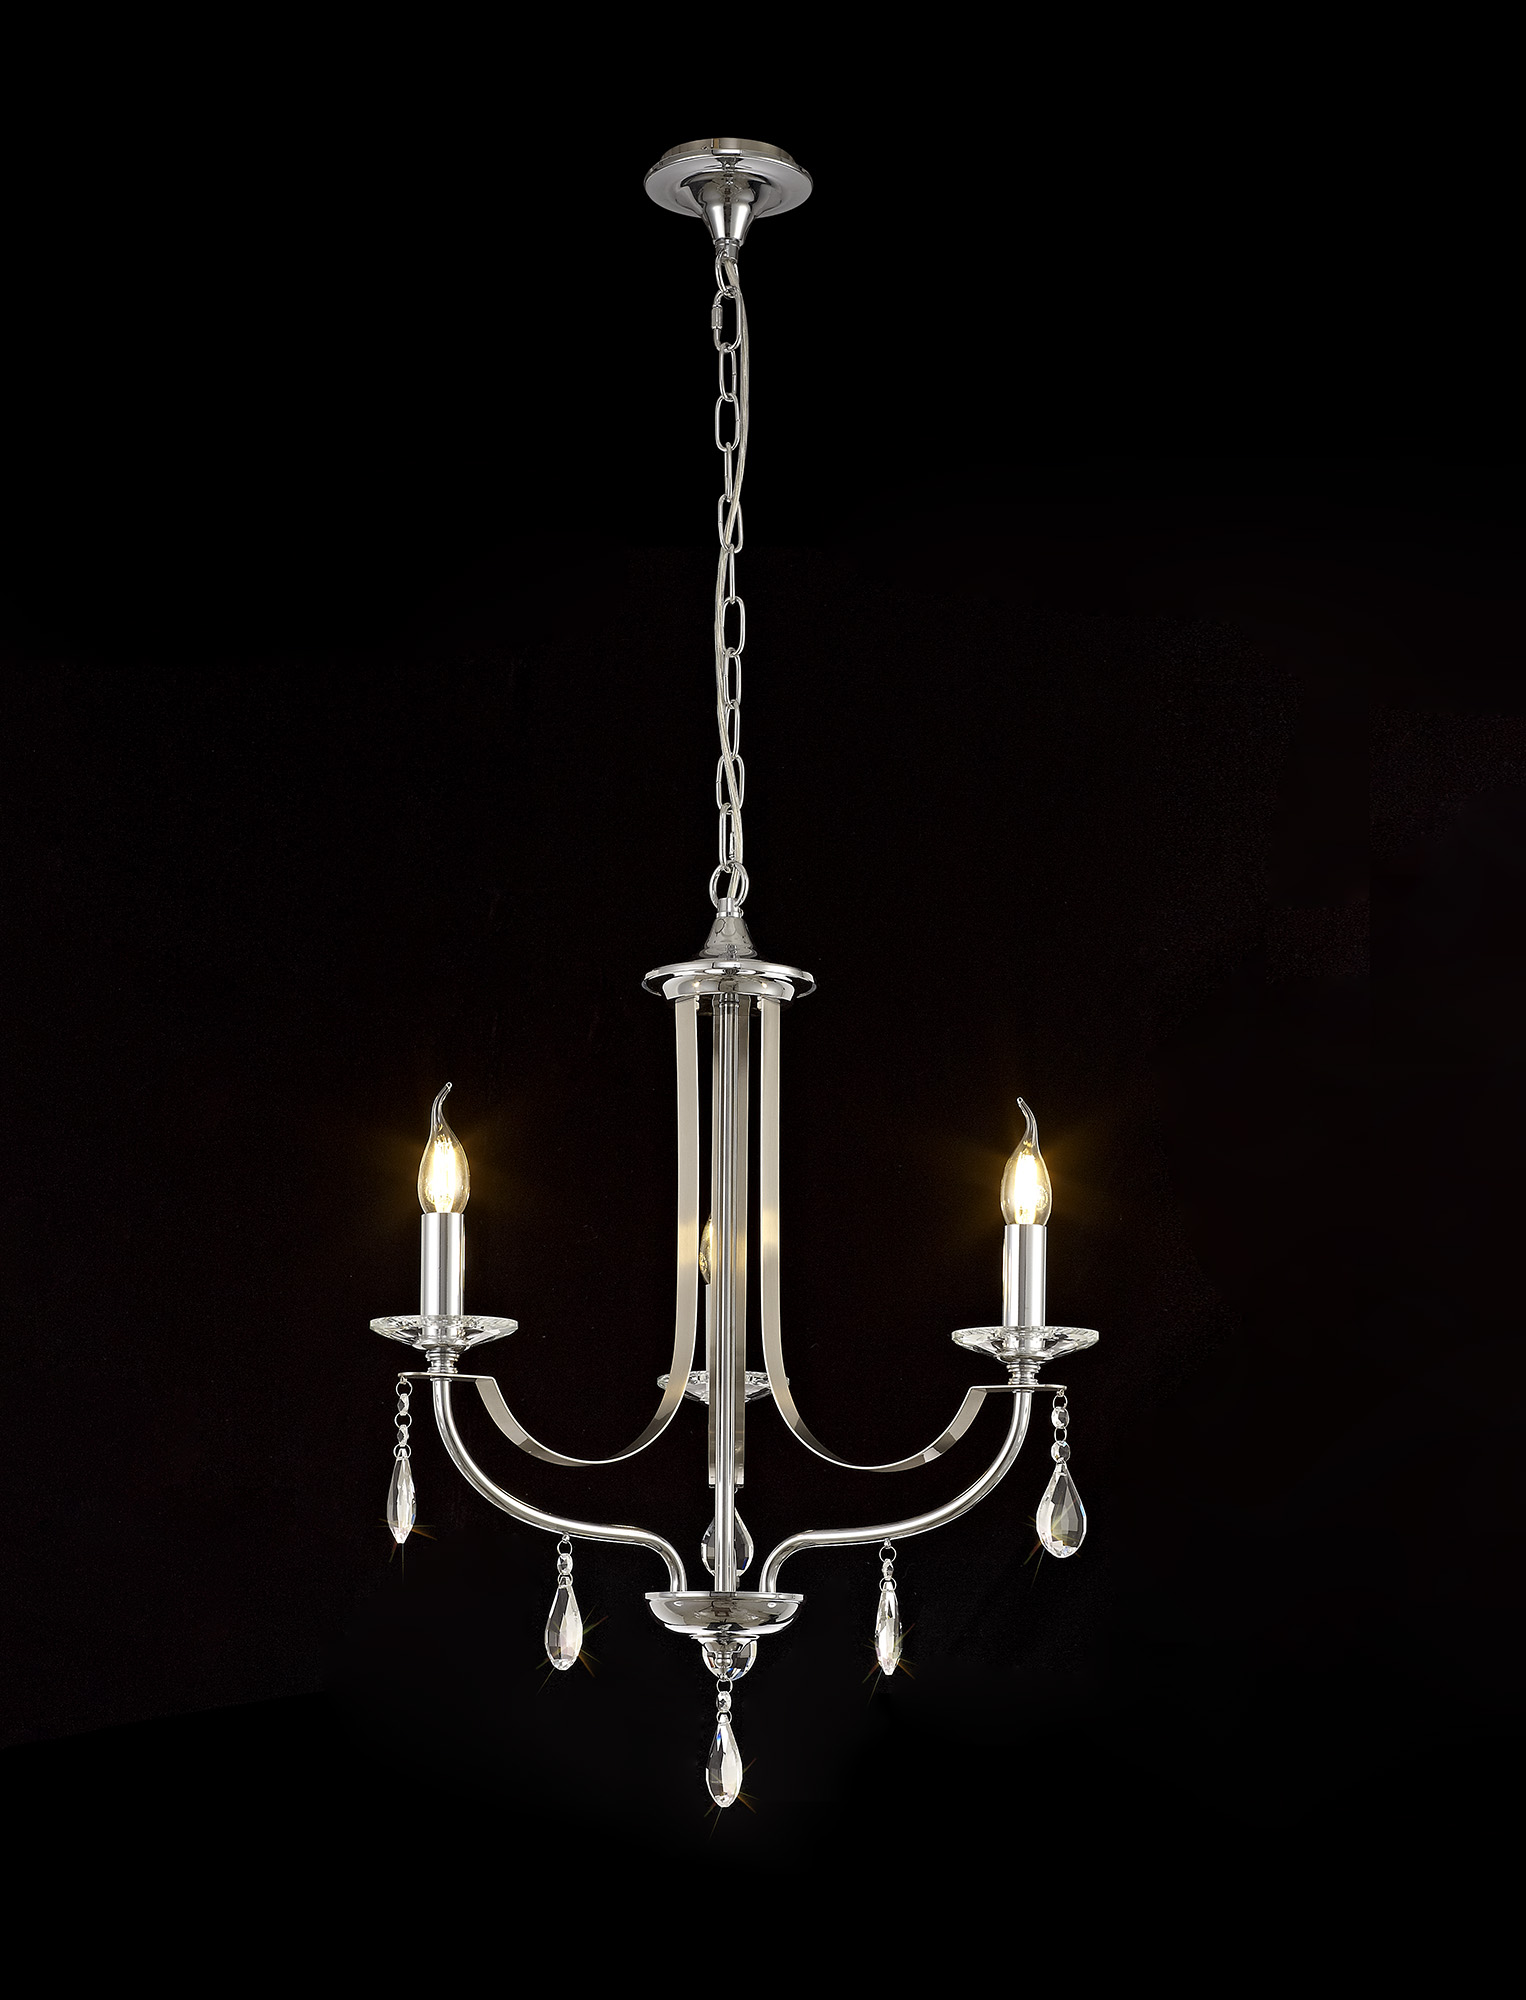 Pendant 3 Light E14 Polished Chrome/Satin Nickel/Clear Crystal